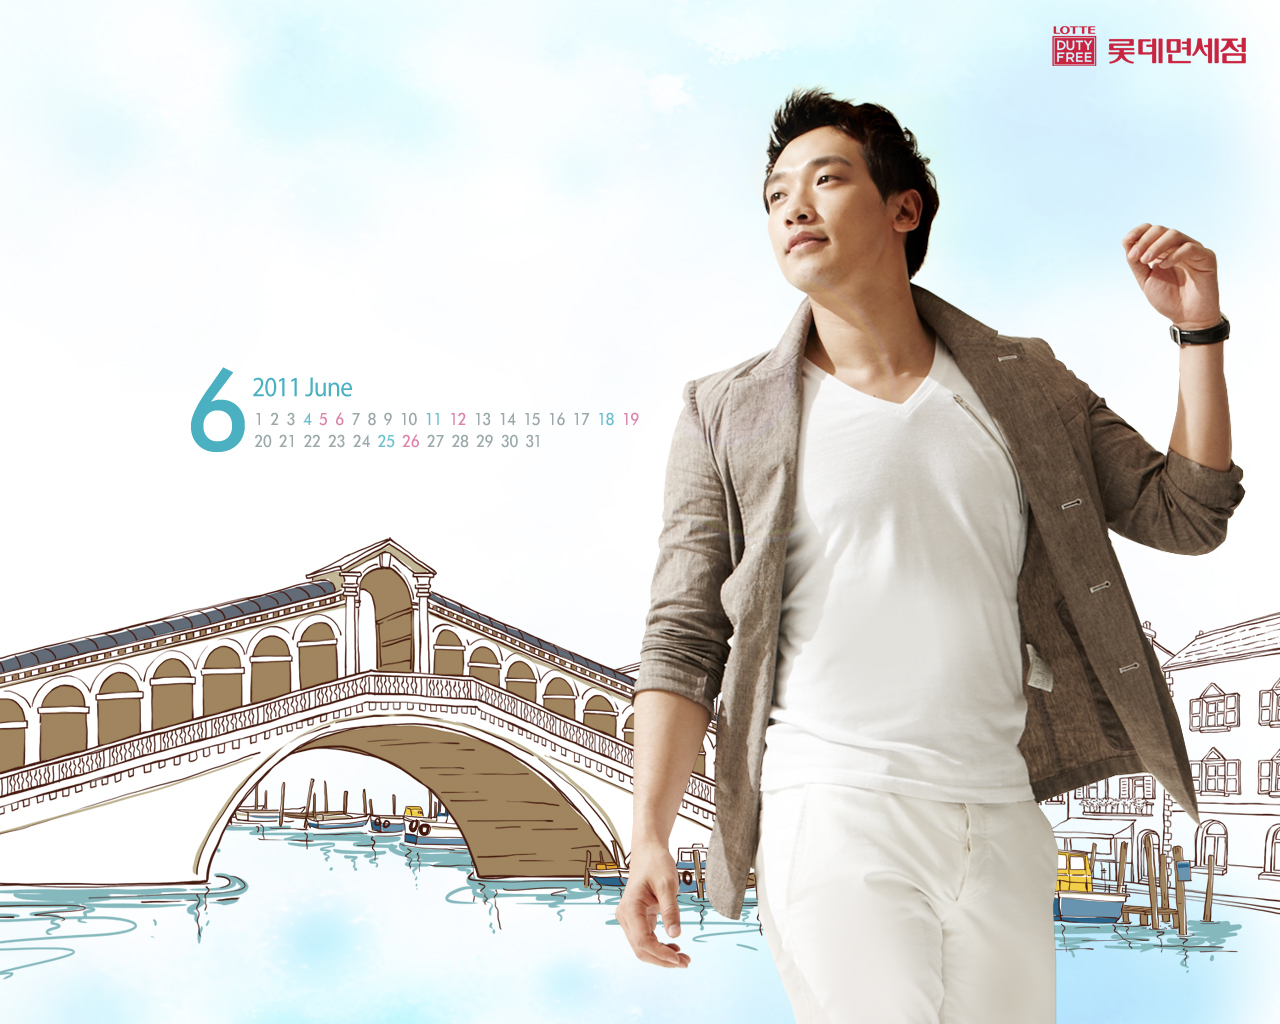 Rain Bi 2 - Rain (Korean) Wallpaper (29014363) - Fanpop